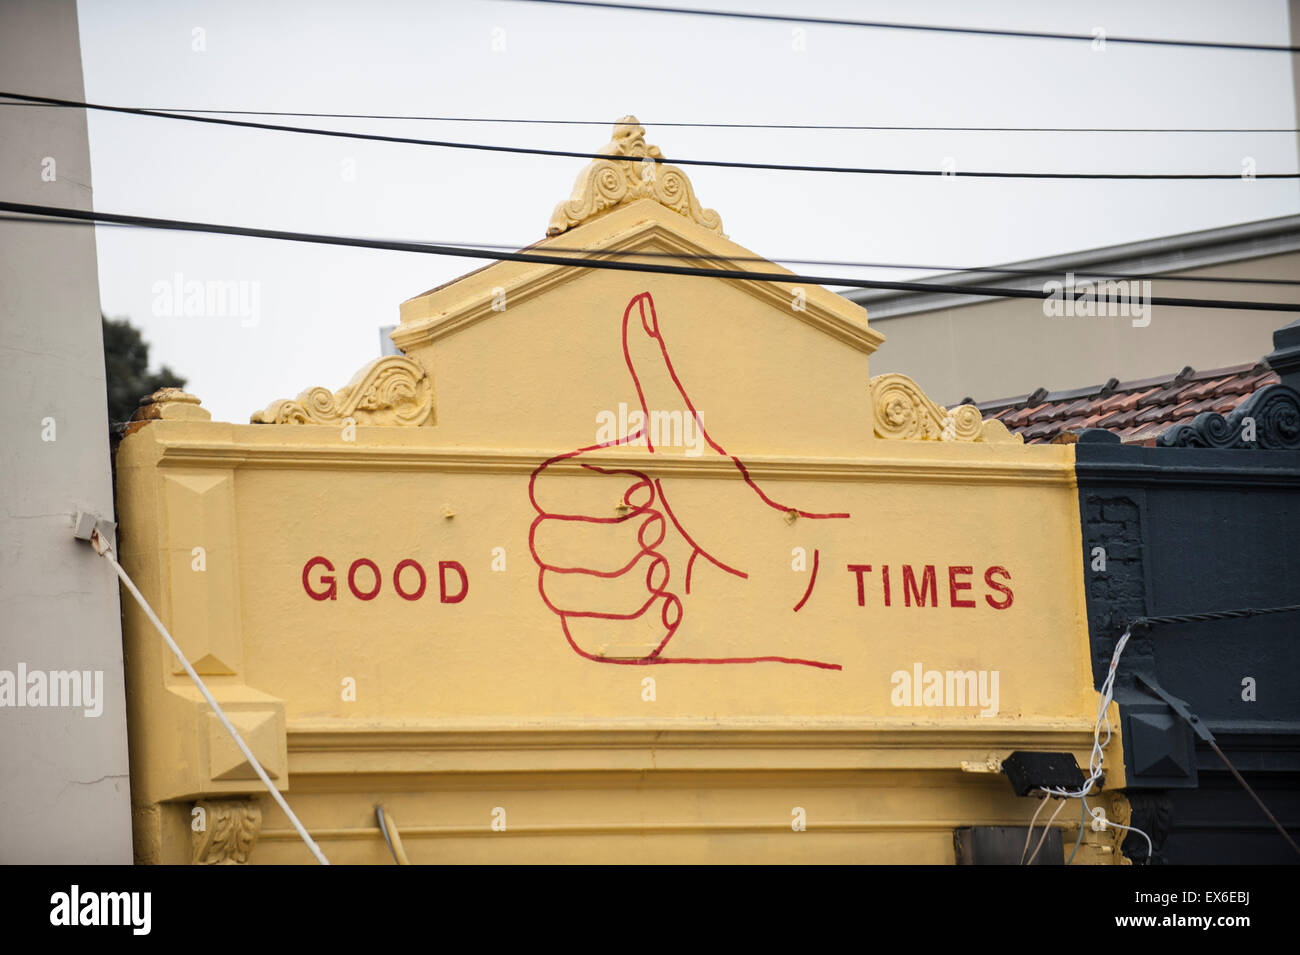 Good times - Stock Image